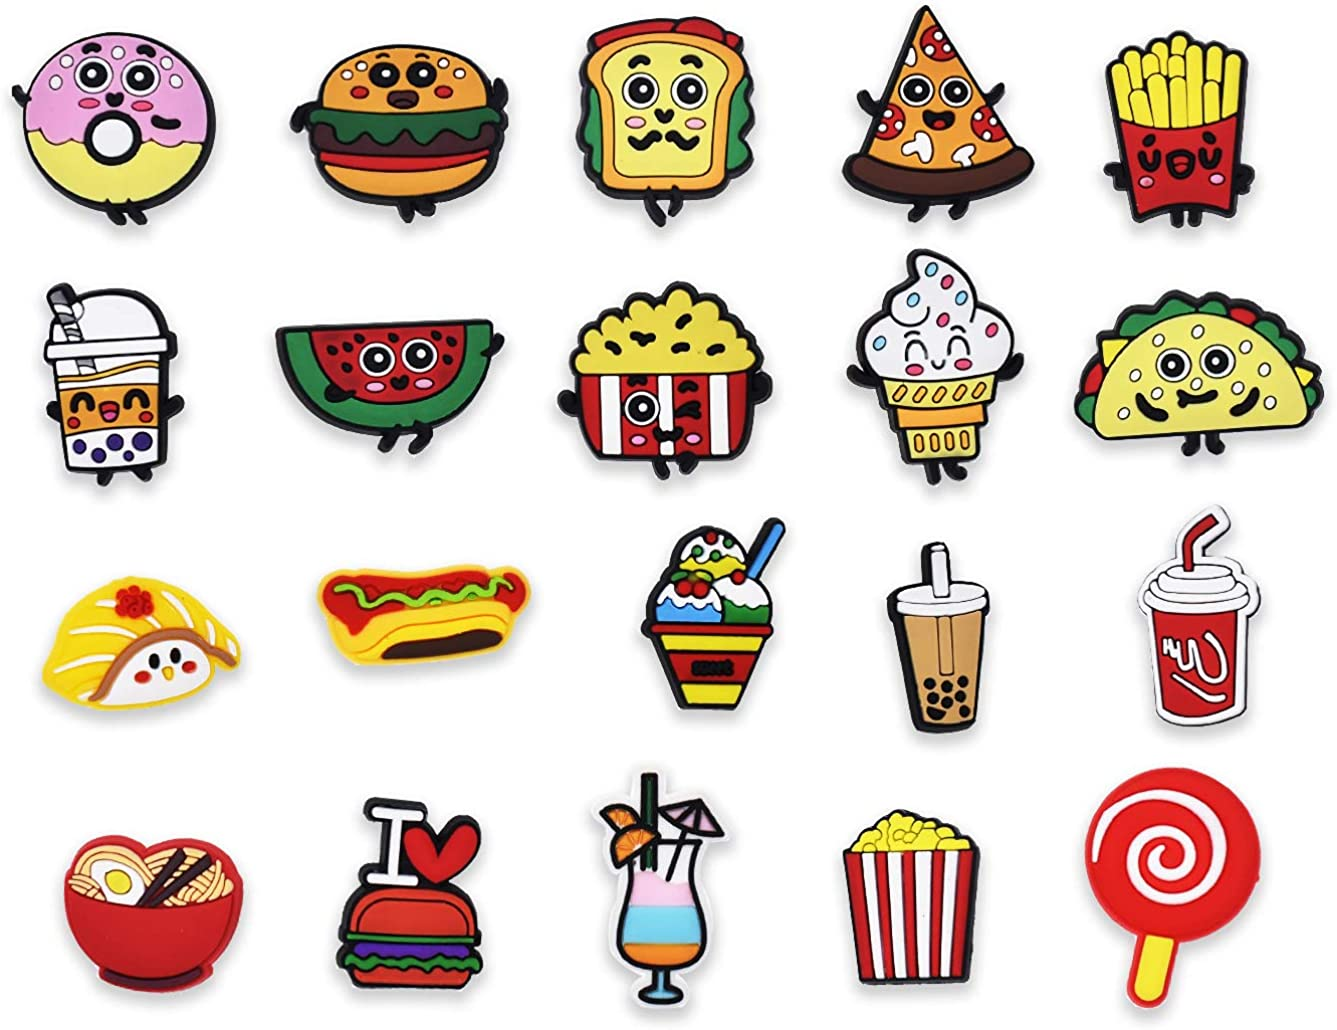 20pcs Food PVC Shoe Charms Different Shapes Hamburger Ice Cream Chips Noodle Decorations fit Sandals/Bracelets for Teens Boys Girls Kids Birthday Gifts